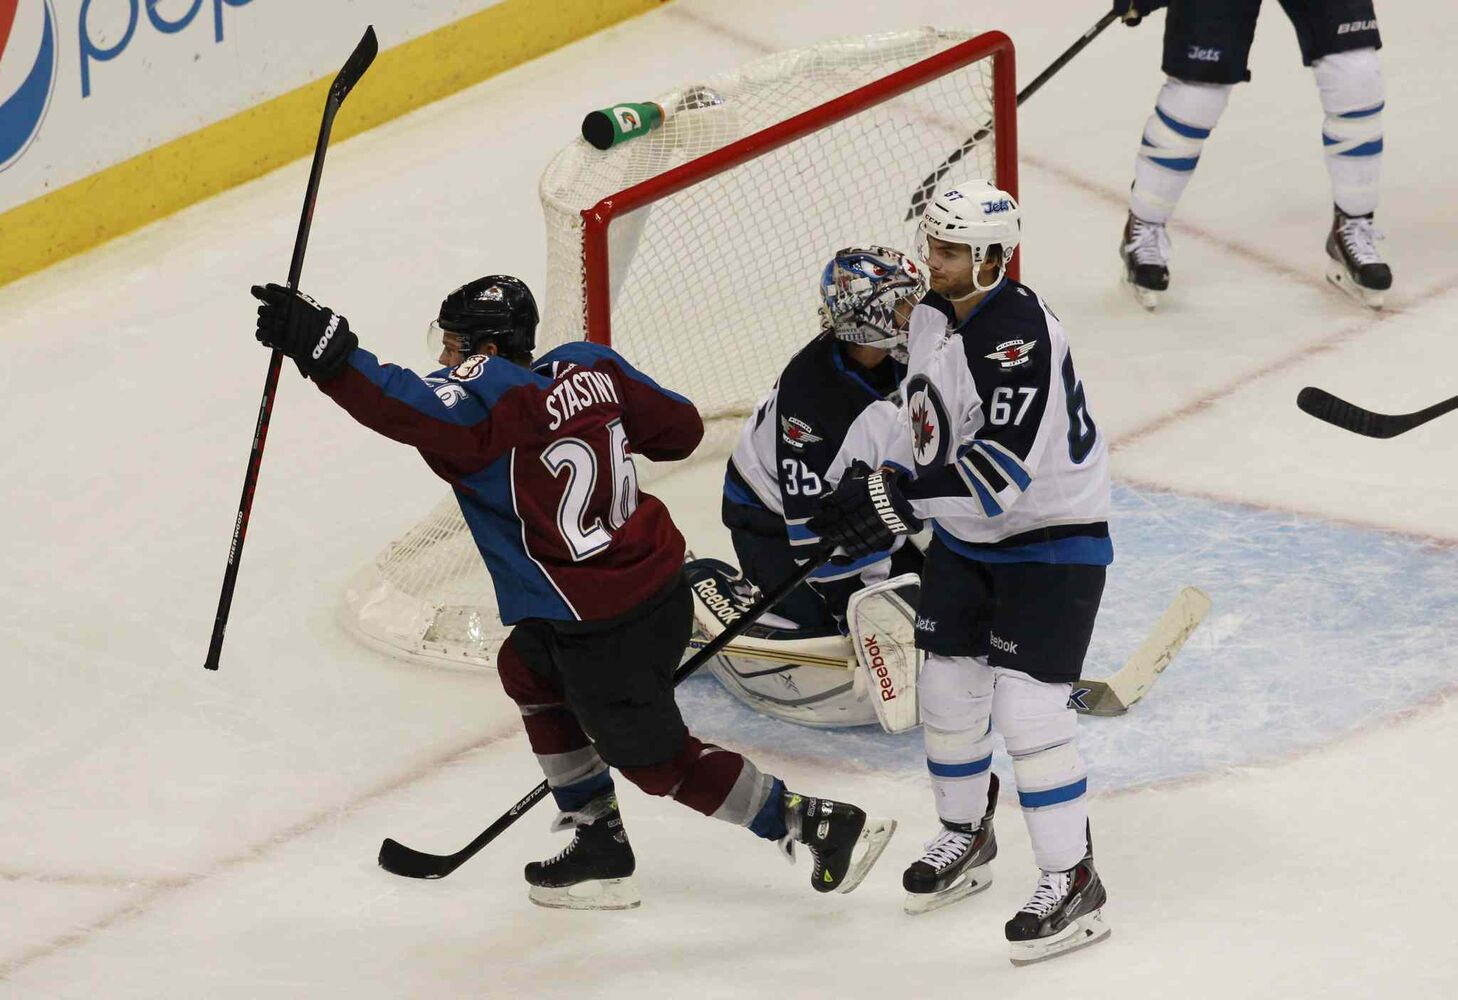 Colorado Avalanche center Paul Stastny (left) celebrates after scoring the scoring the game-winning goal as Al Montoya (centre) and winger Michael Froliklook on in the third period.